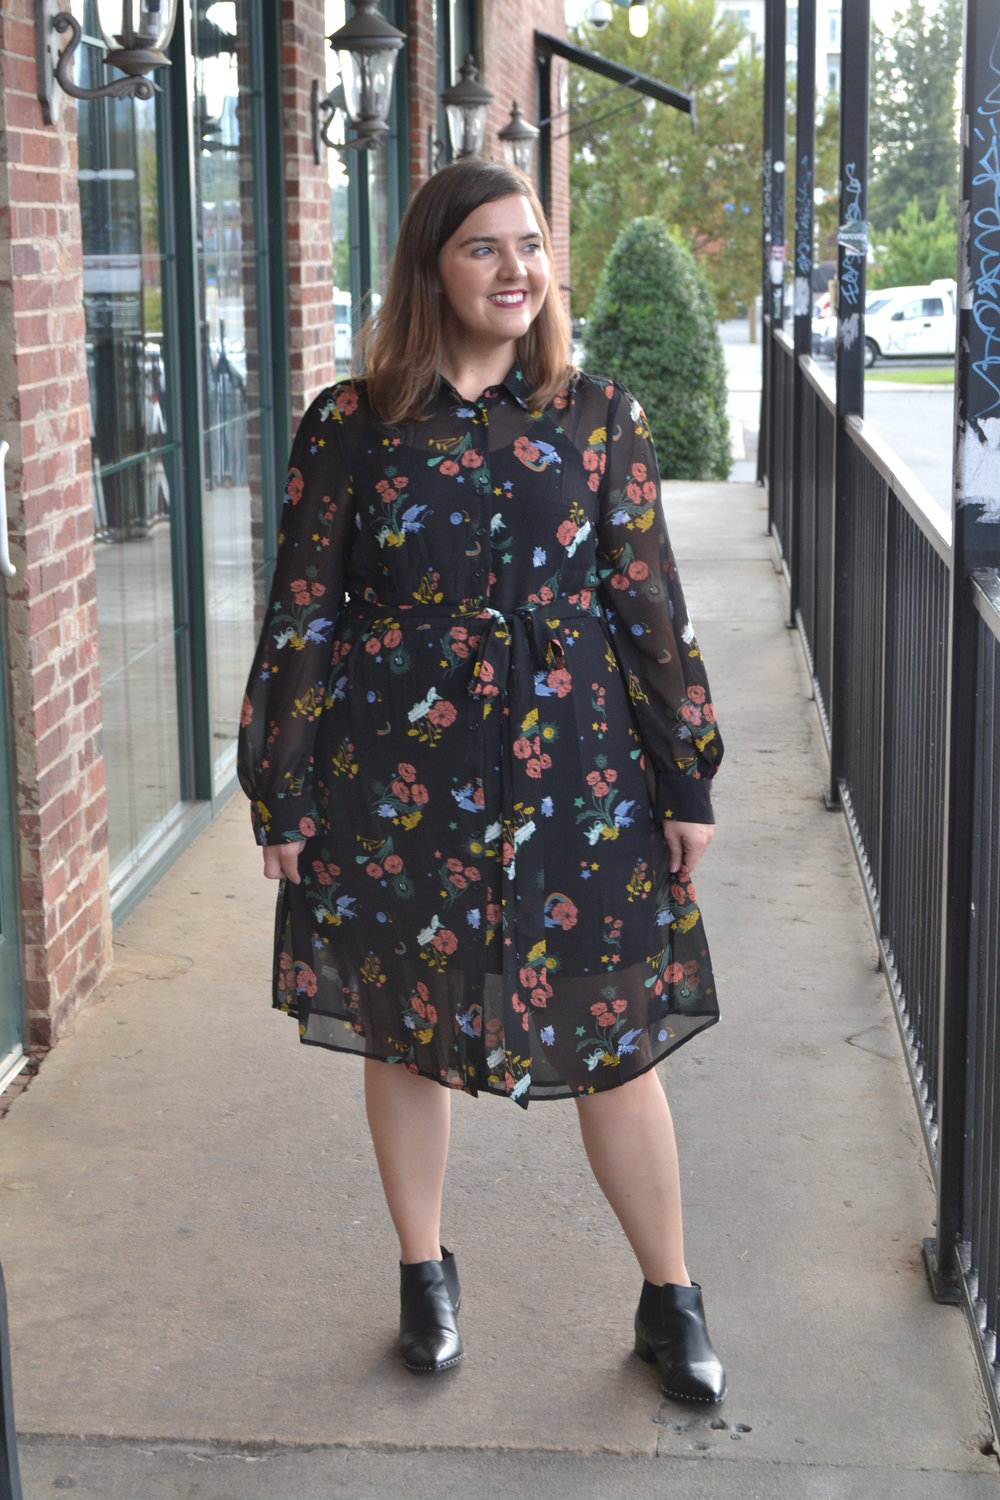 This ModCloth dress is inspired by the Wizard of Oz and has cool prints of witch hats, flying monkeys, poppies, Toto, and rainbows. Because the dress is a classic shirt dress, it's still perfect for work even with the out-there print.